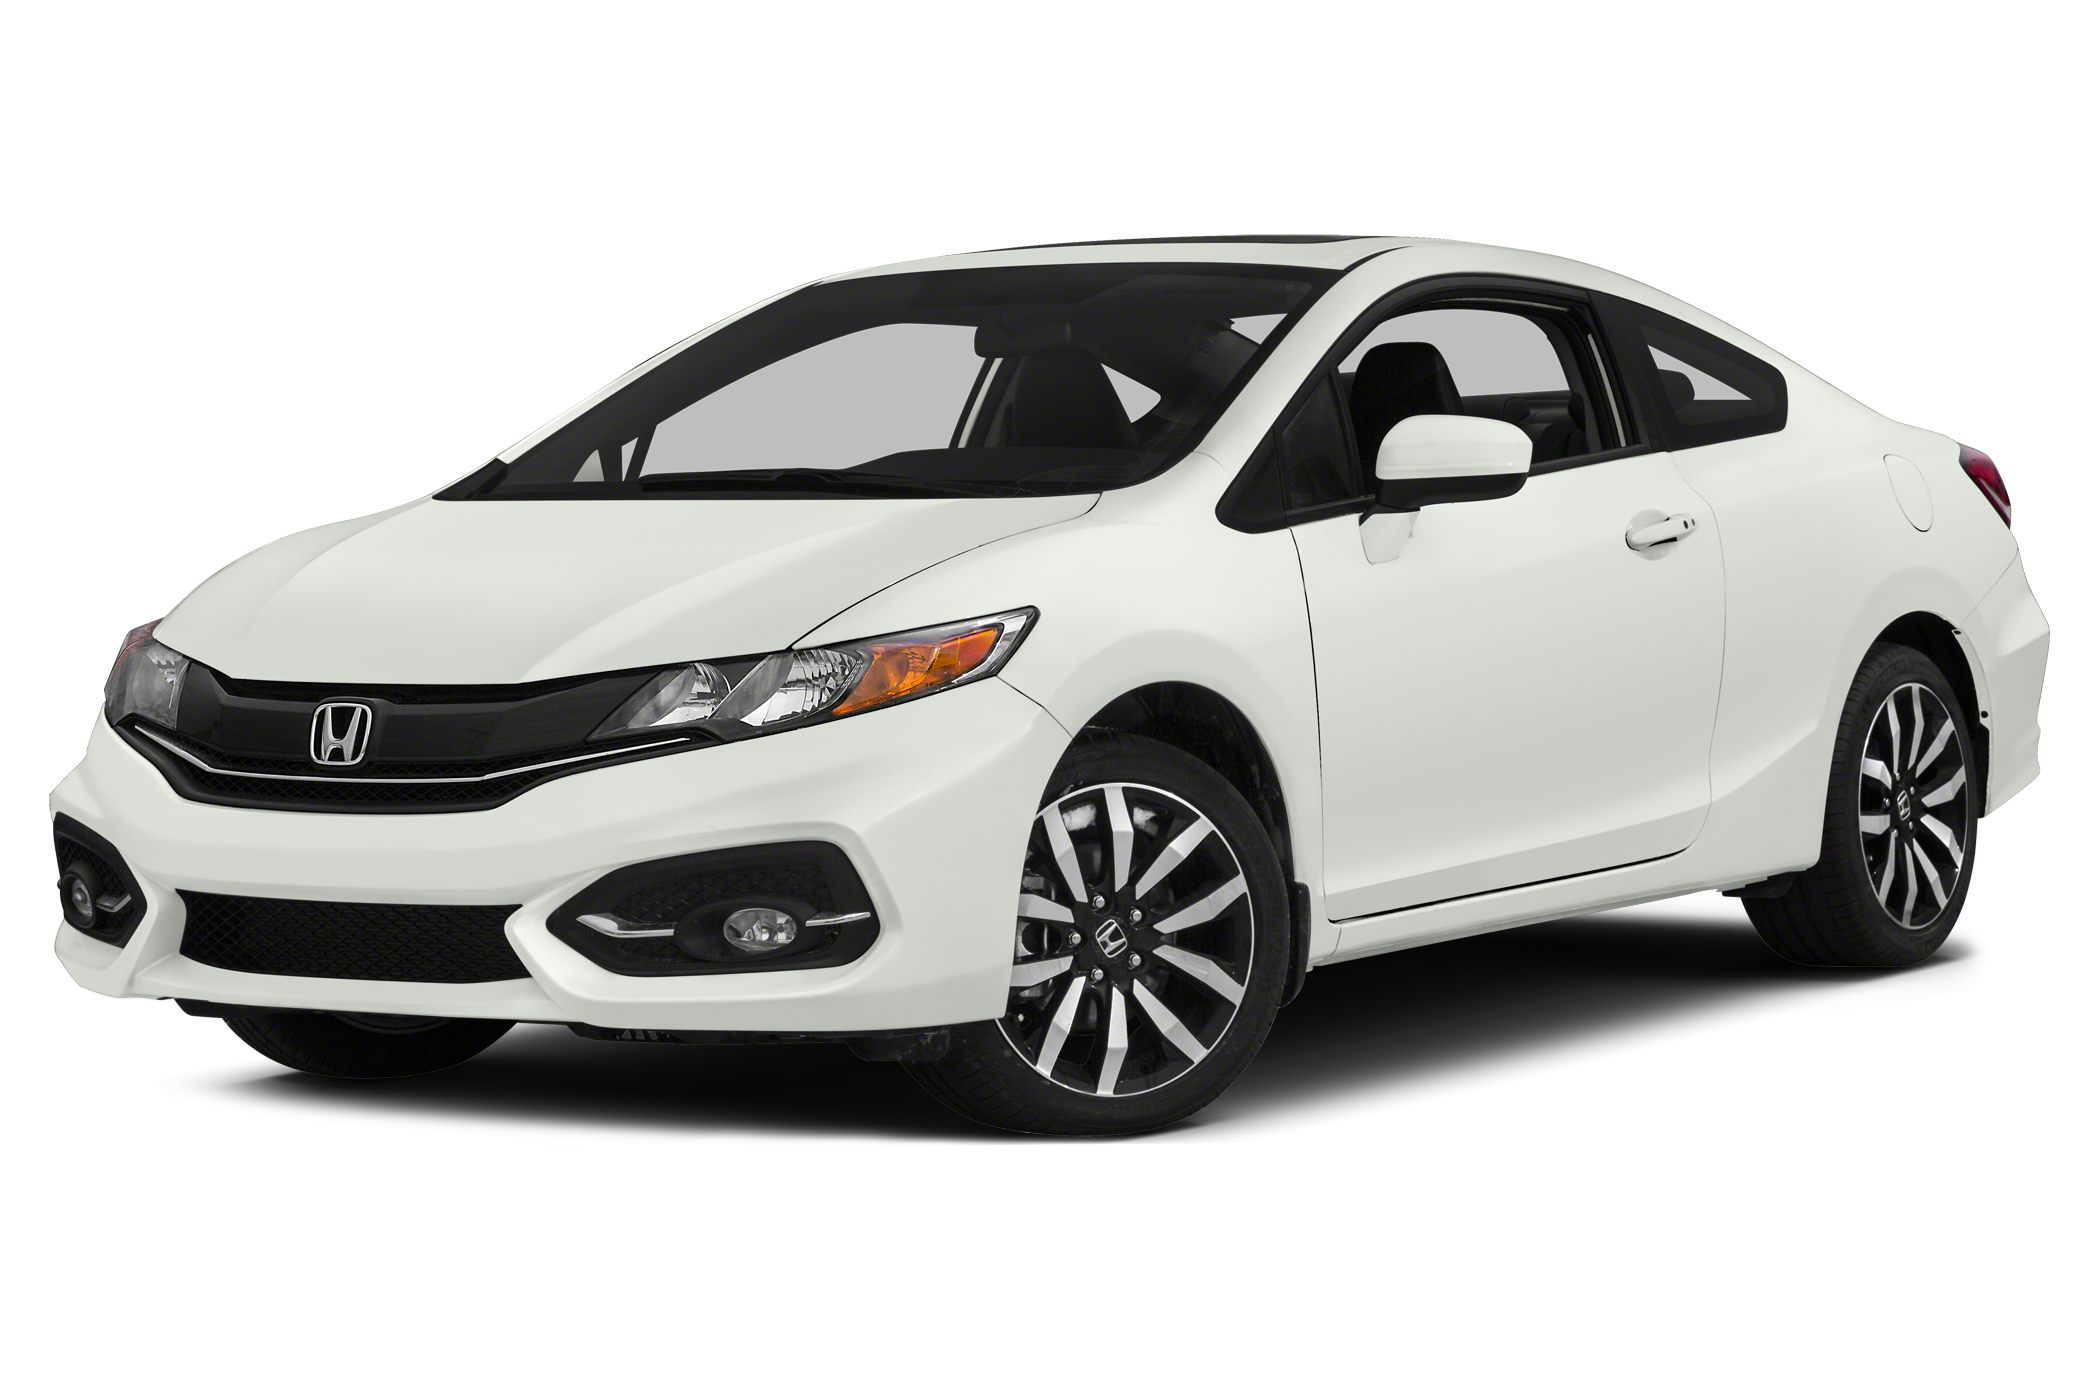 2015 Honda Civic EX-L Sedan for sale in Gadsden for $25,160 with 5 miles